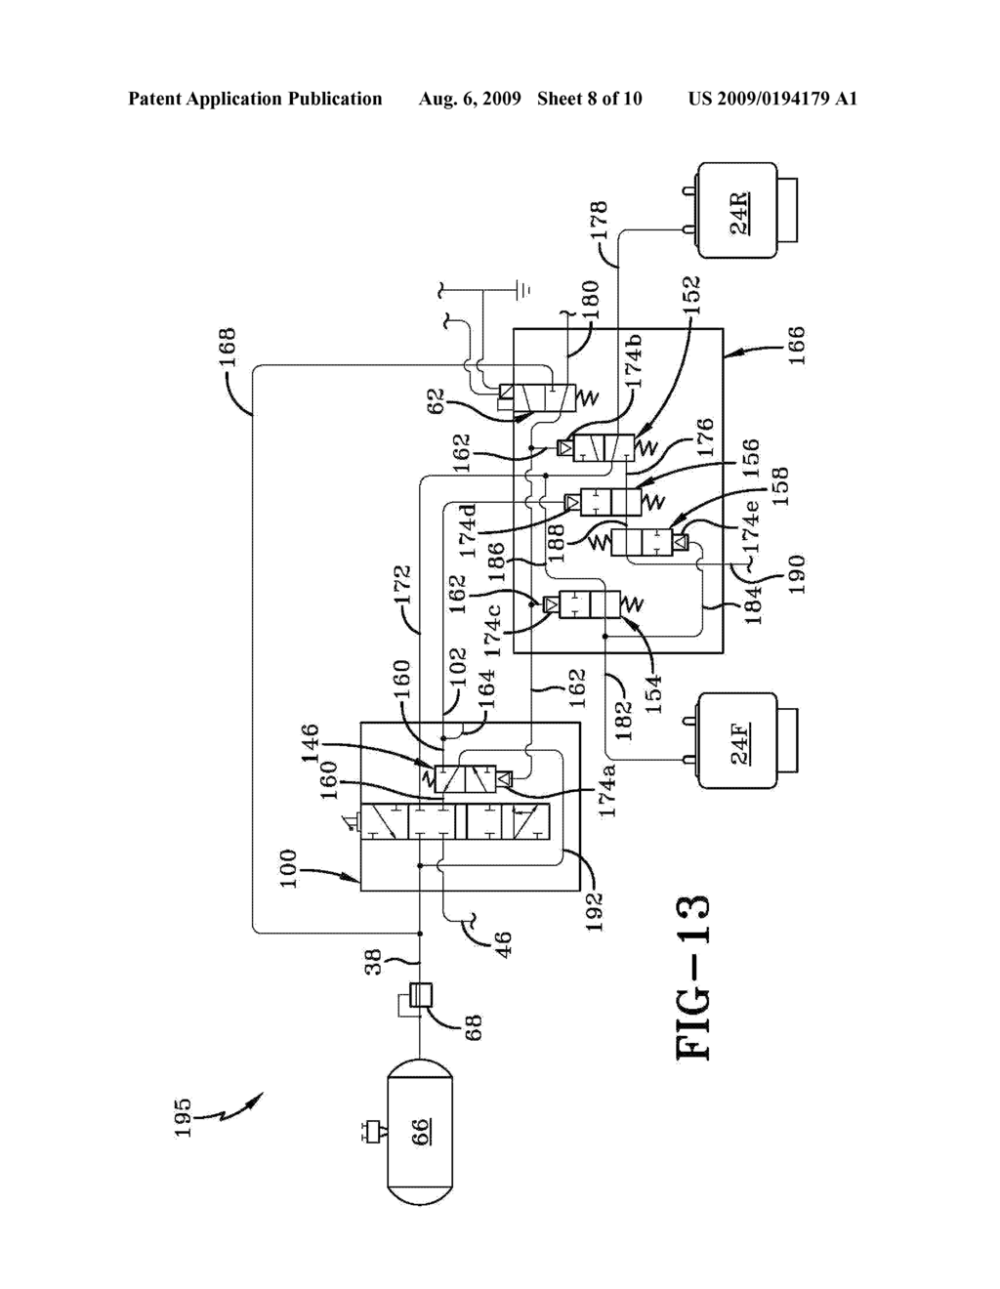 medium resolution of multi stage height control valve including position sensitive pilot signal and pressure boost for vehicle air springs diagram schematic and image 09